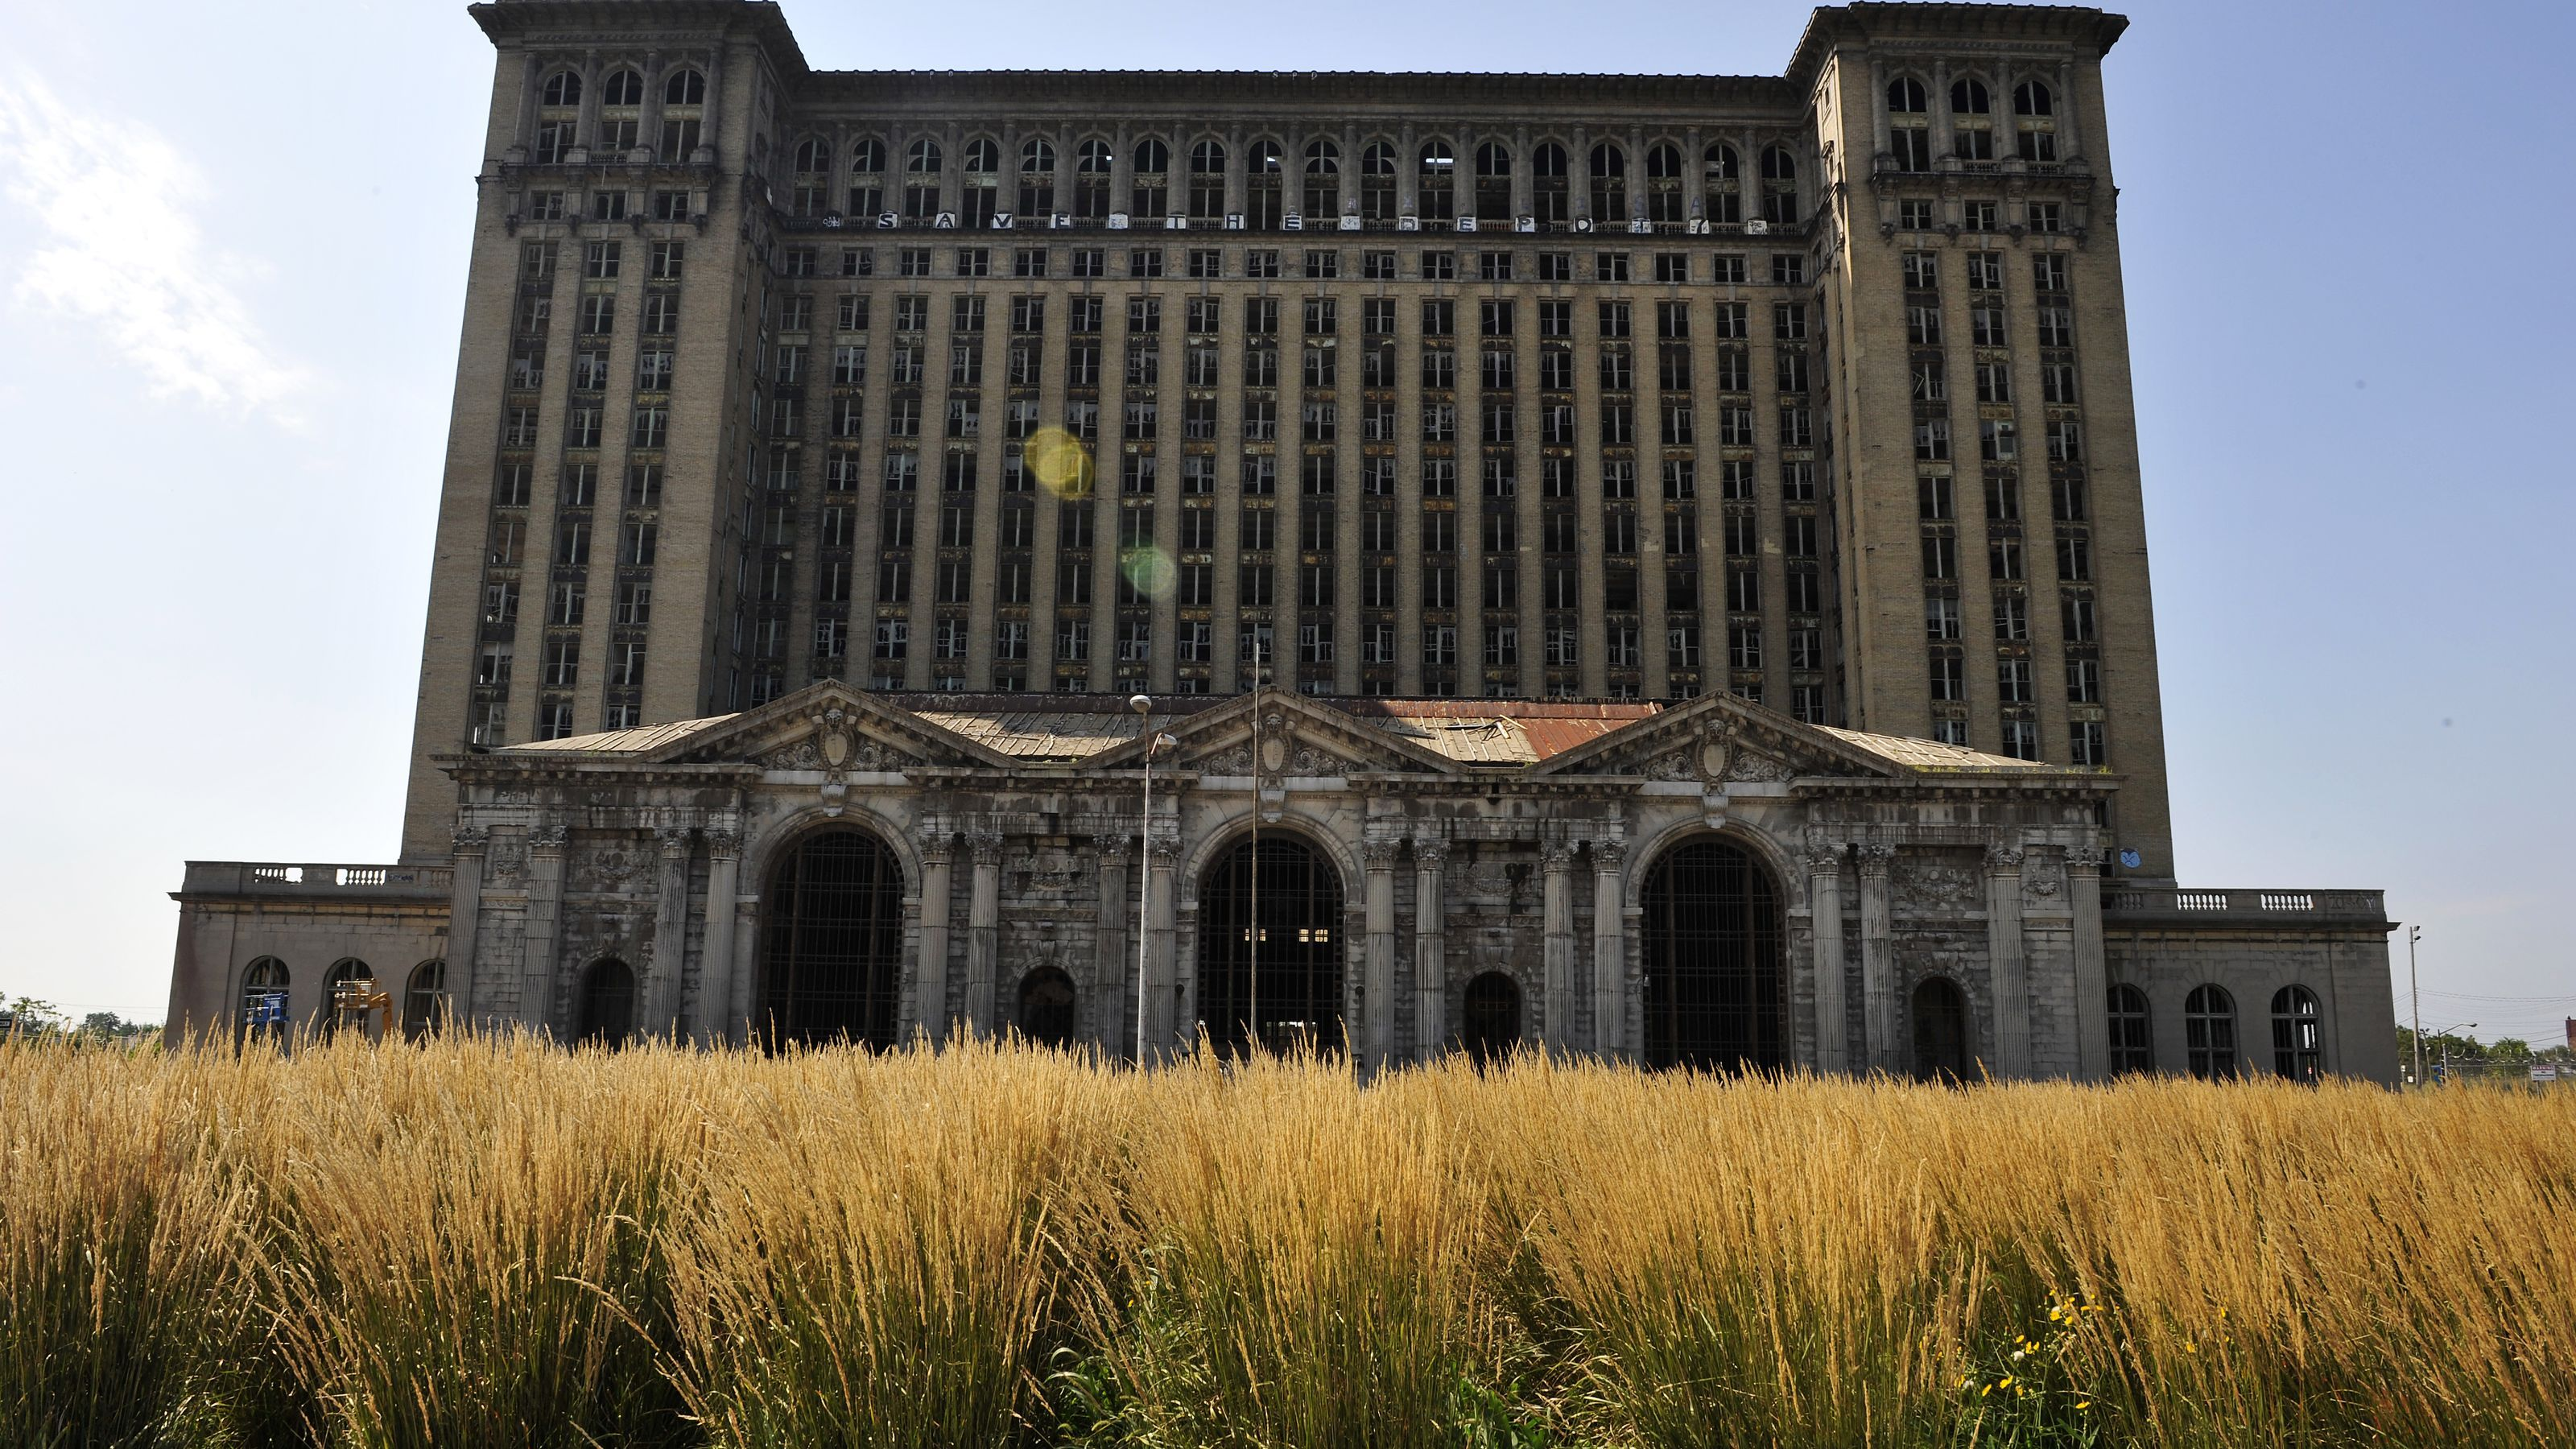 Michigan Central Station: Then & Now